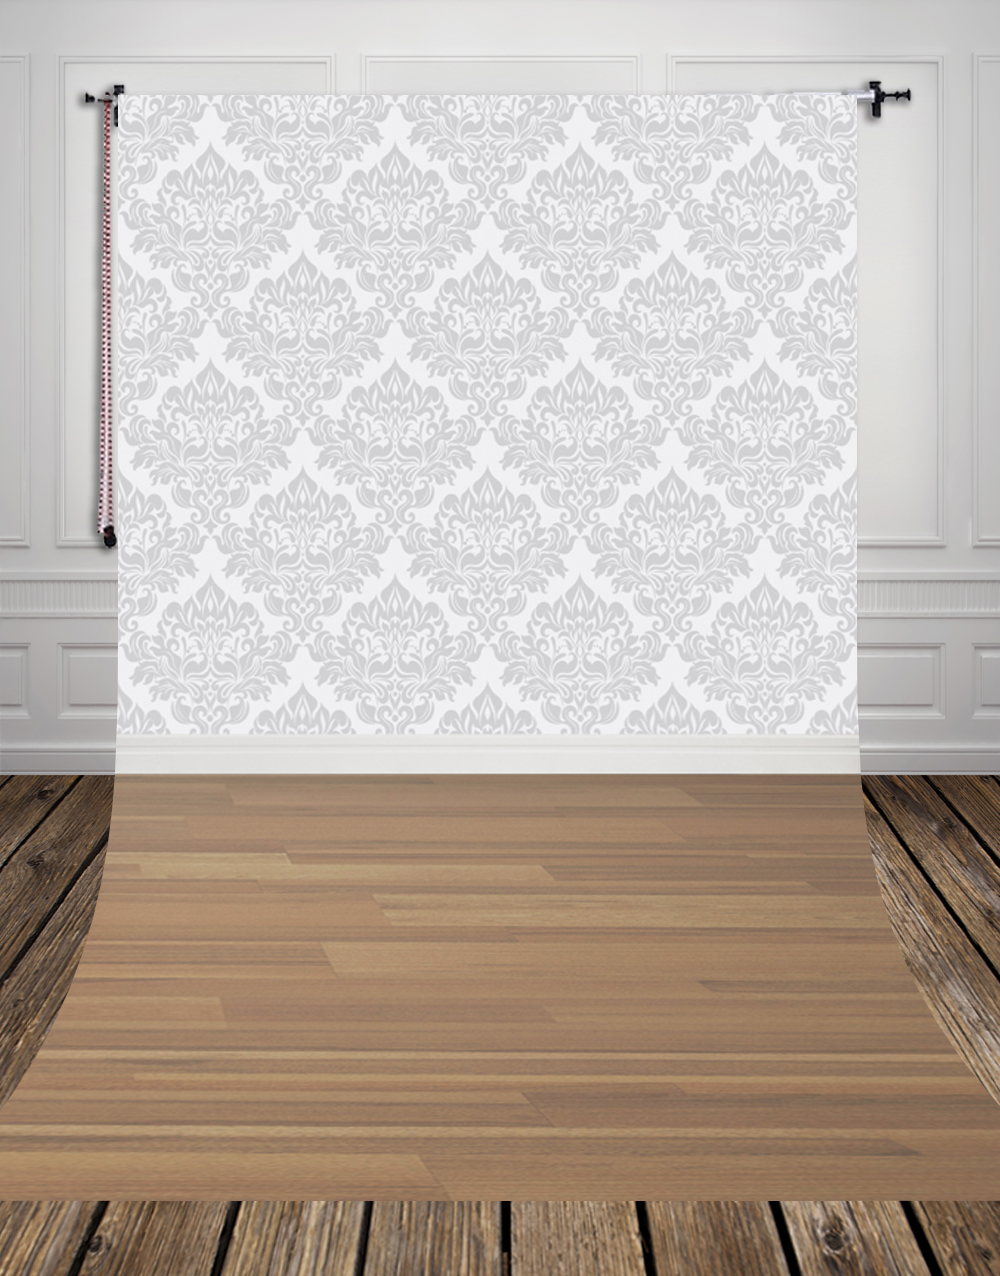 GREY damask printed indoor photo backdrops thin vinyl backdrop for studio children BABY photography backgrounds D-9898 back to school backgrounds deep green backdrops for photo studio baby photo thin art fabric backdrop d 3546